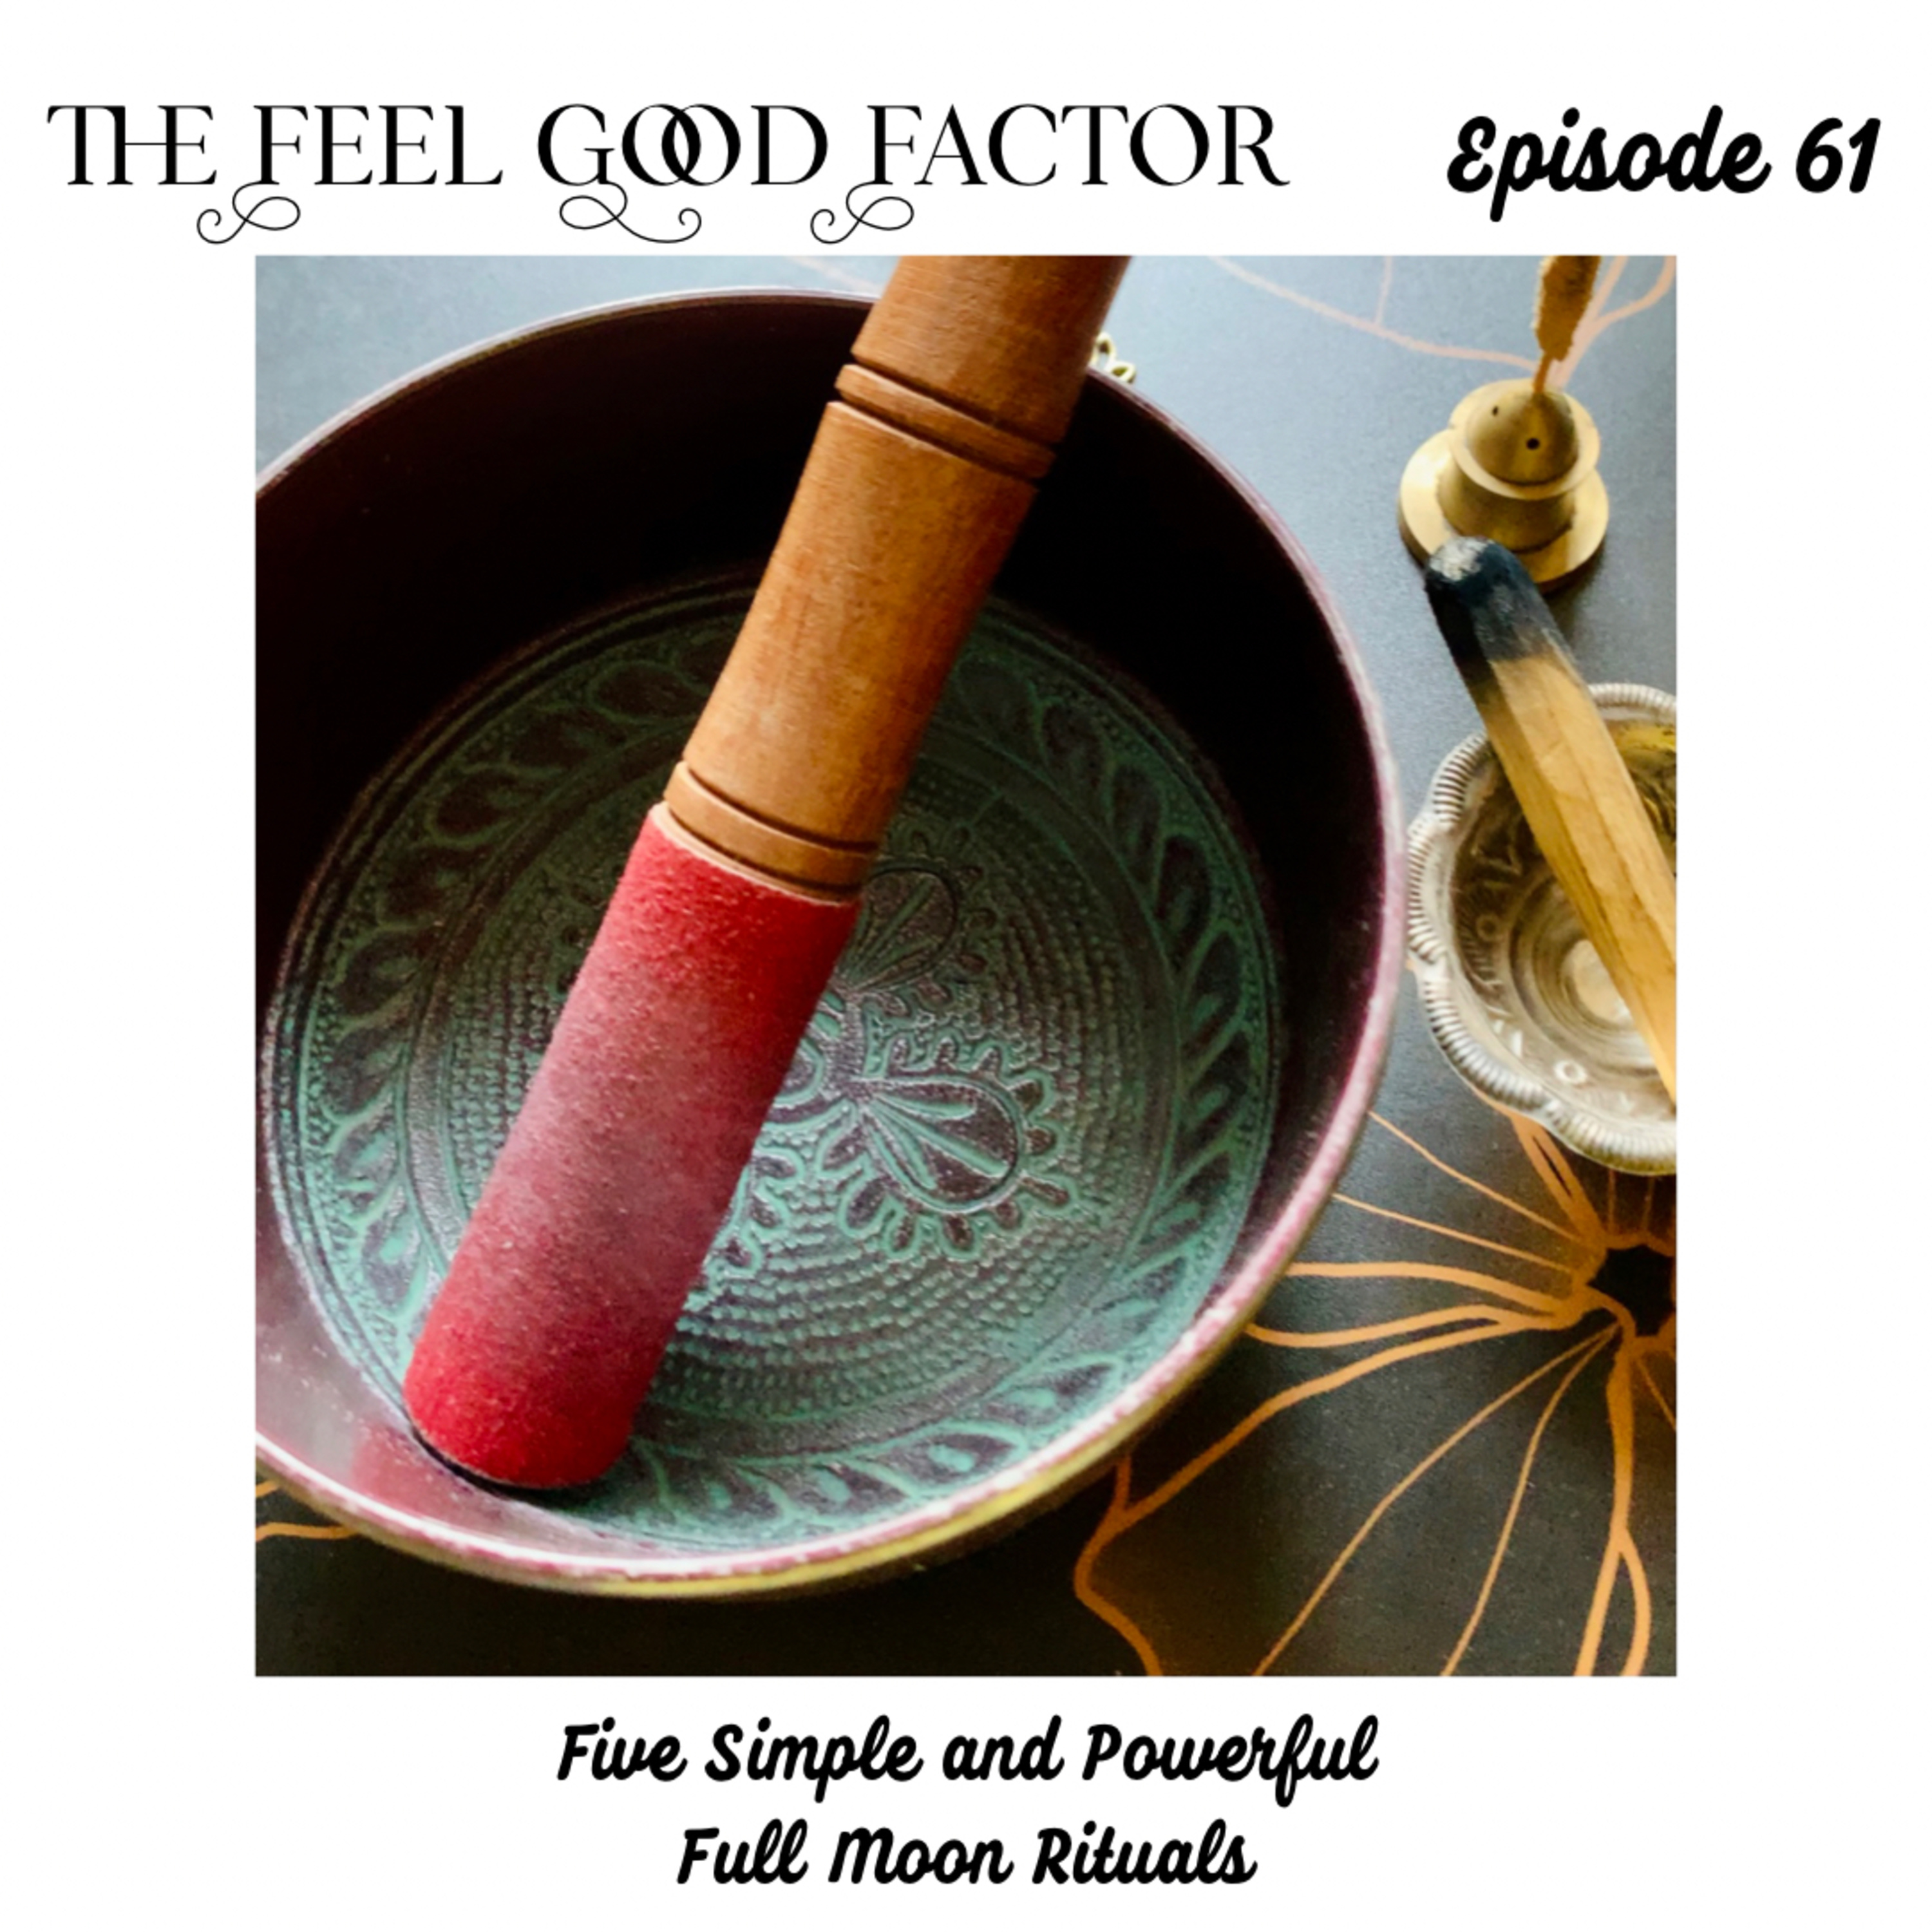 61: Five Simple and Powerful Full Moon Rituals